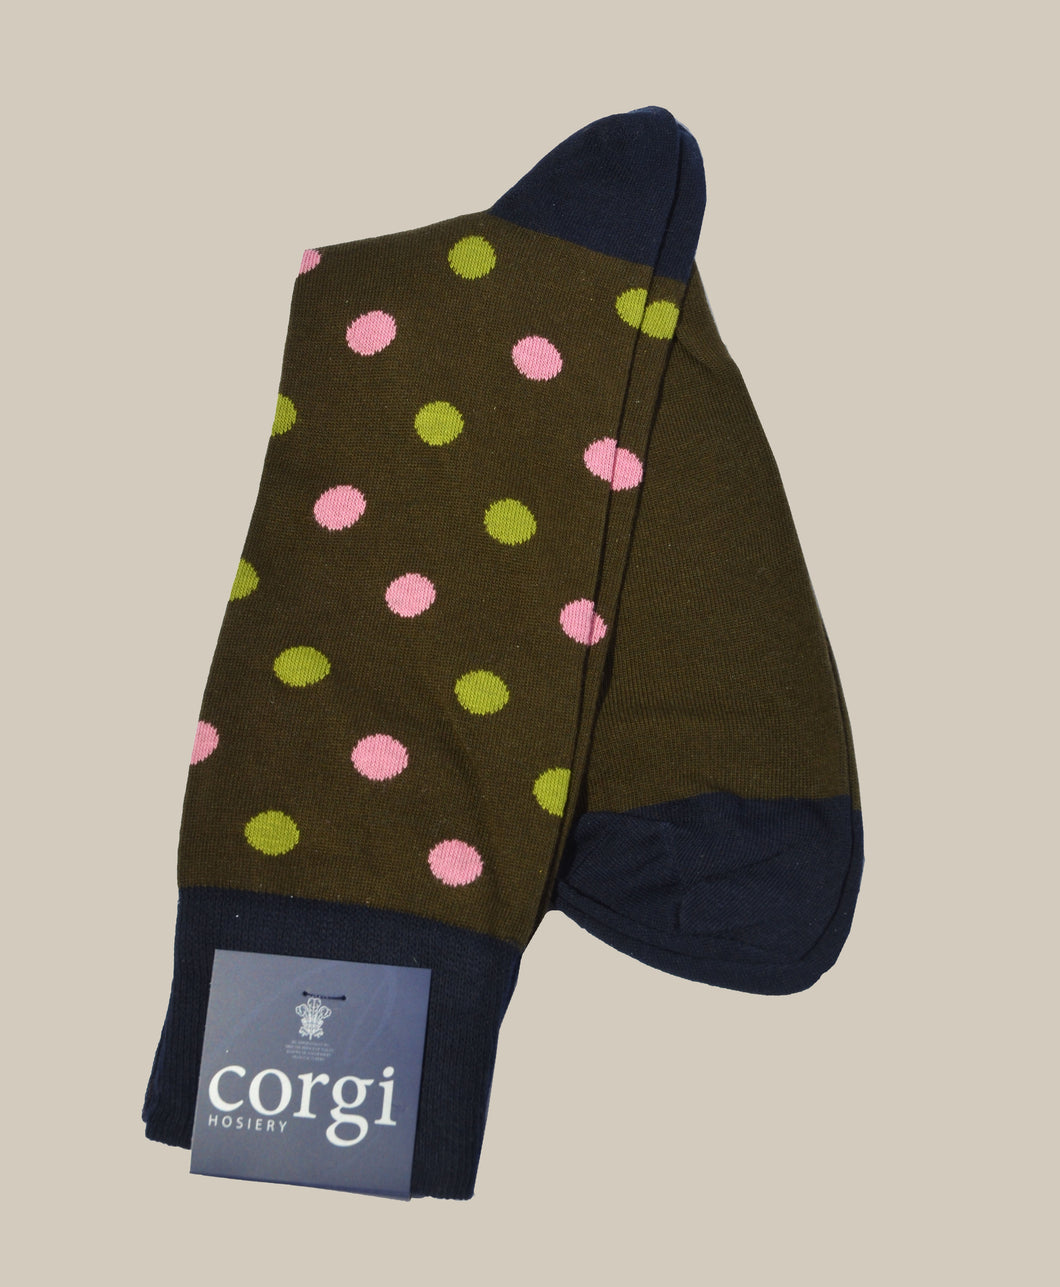 Polka Dot Cotton Blend Socks - Green & Pink